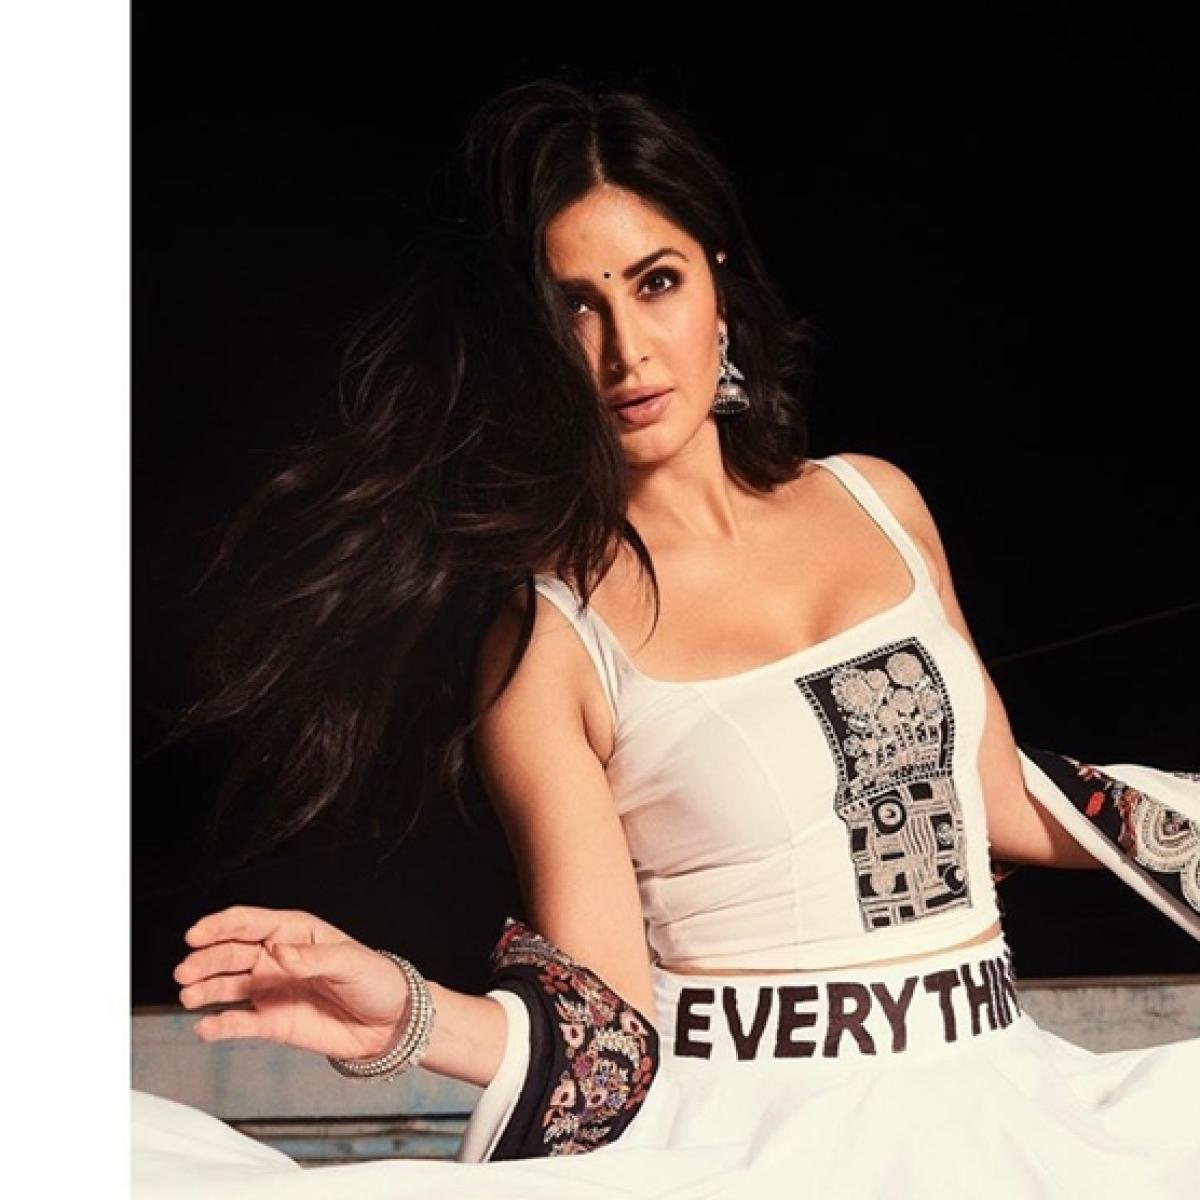 Don't know how to sweep? Take cues from Katrina Kaif cleaning her house